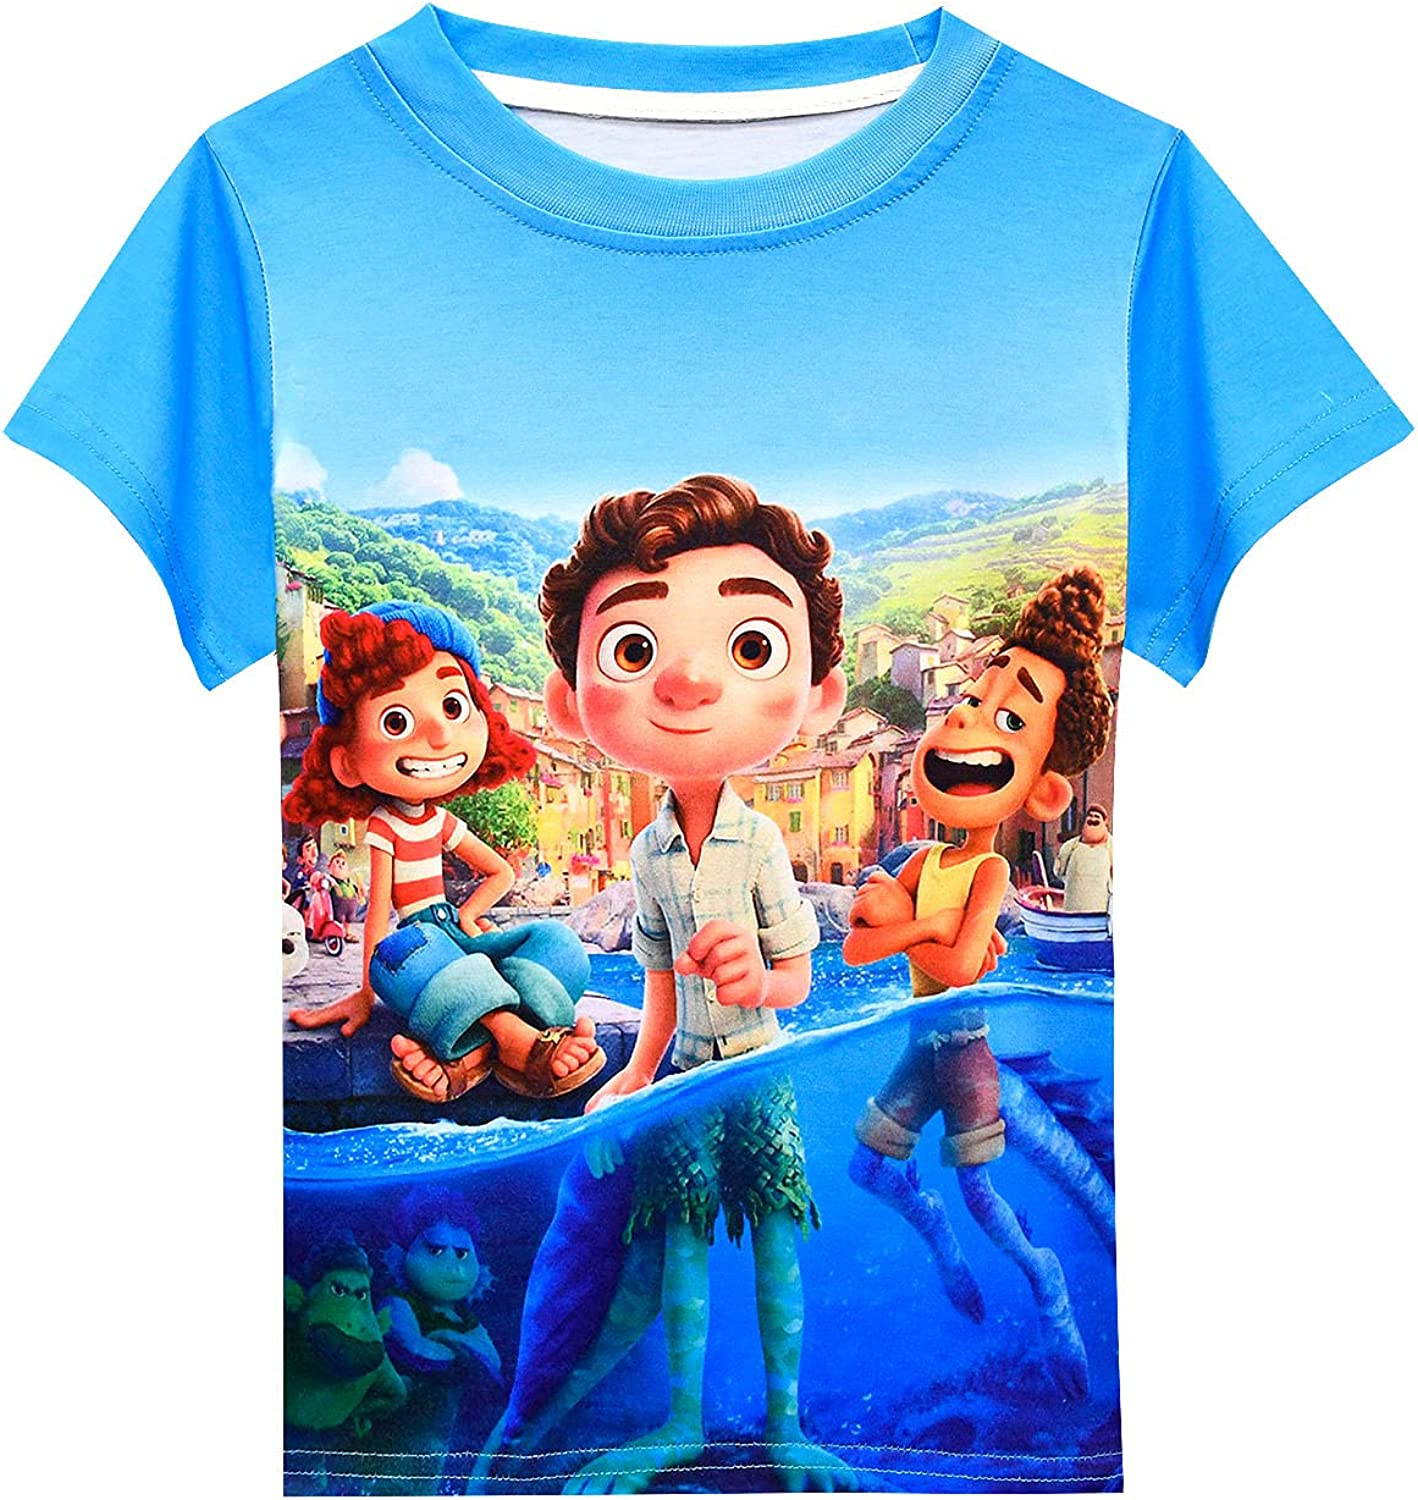 Rogkidha Boys Short Sleeve Sea Summer Cas Tshirt Cartoon Fixed price All items in the store for sale Monster